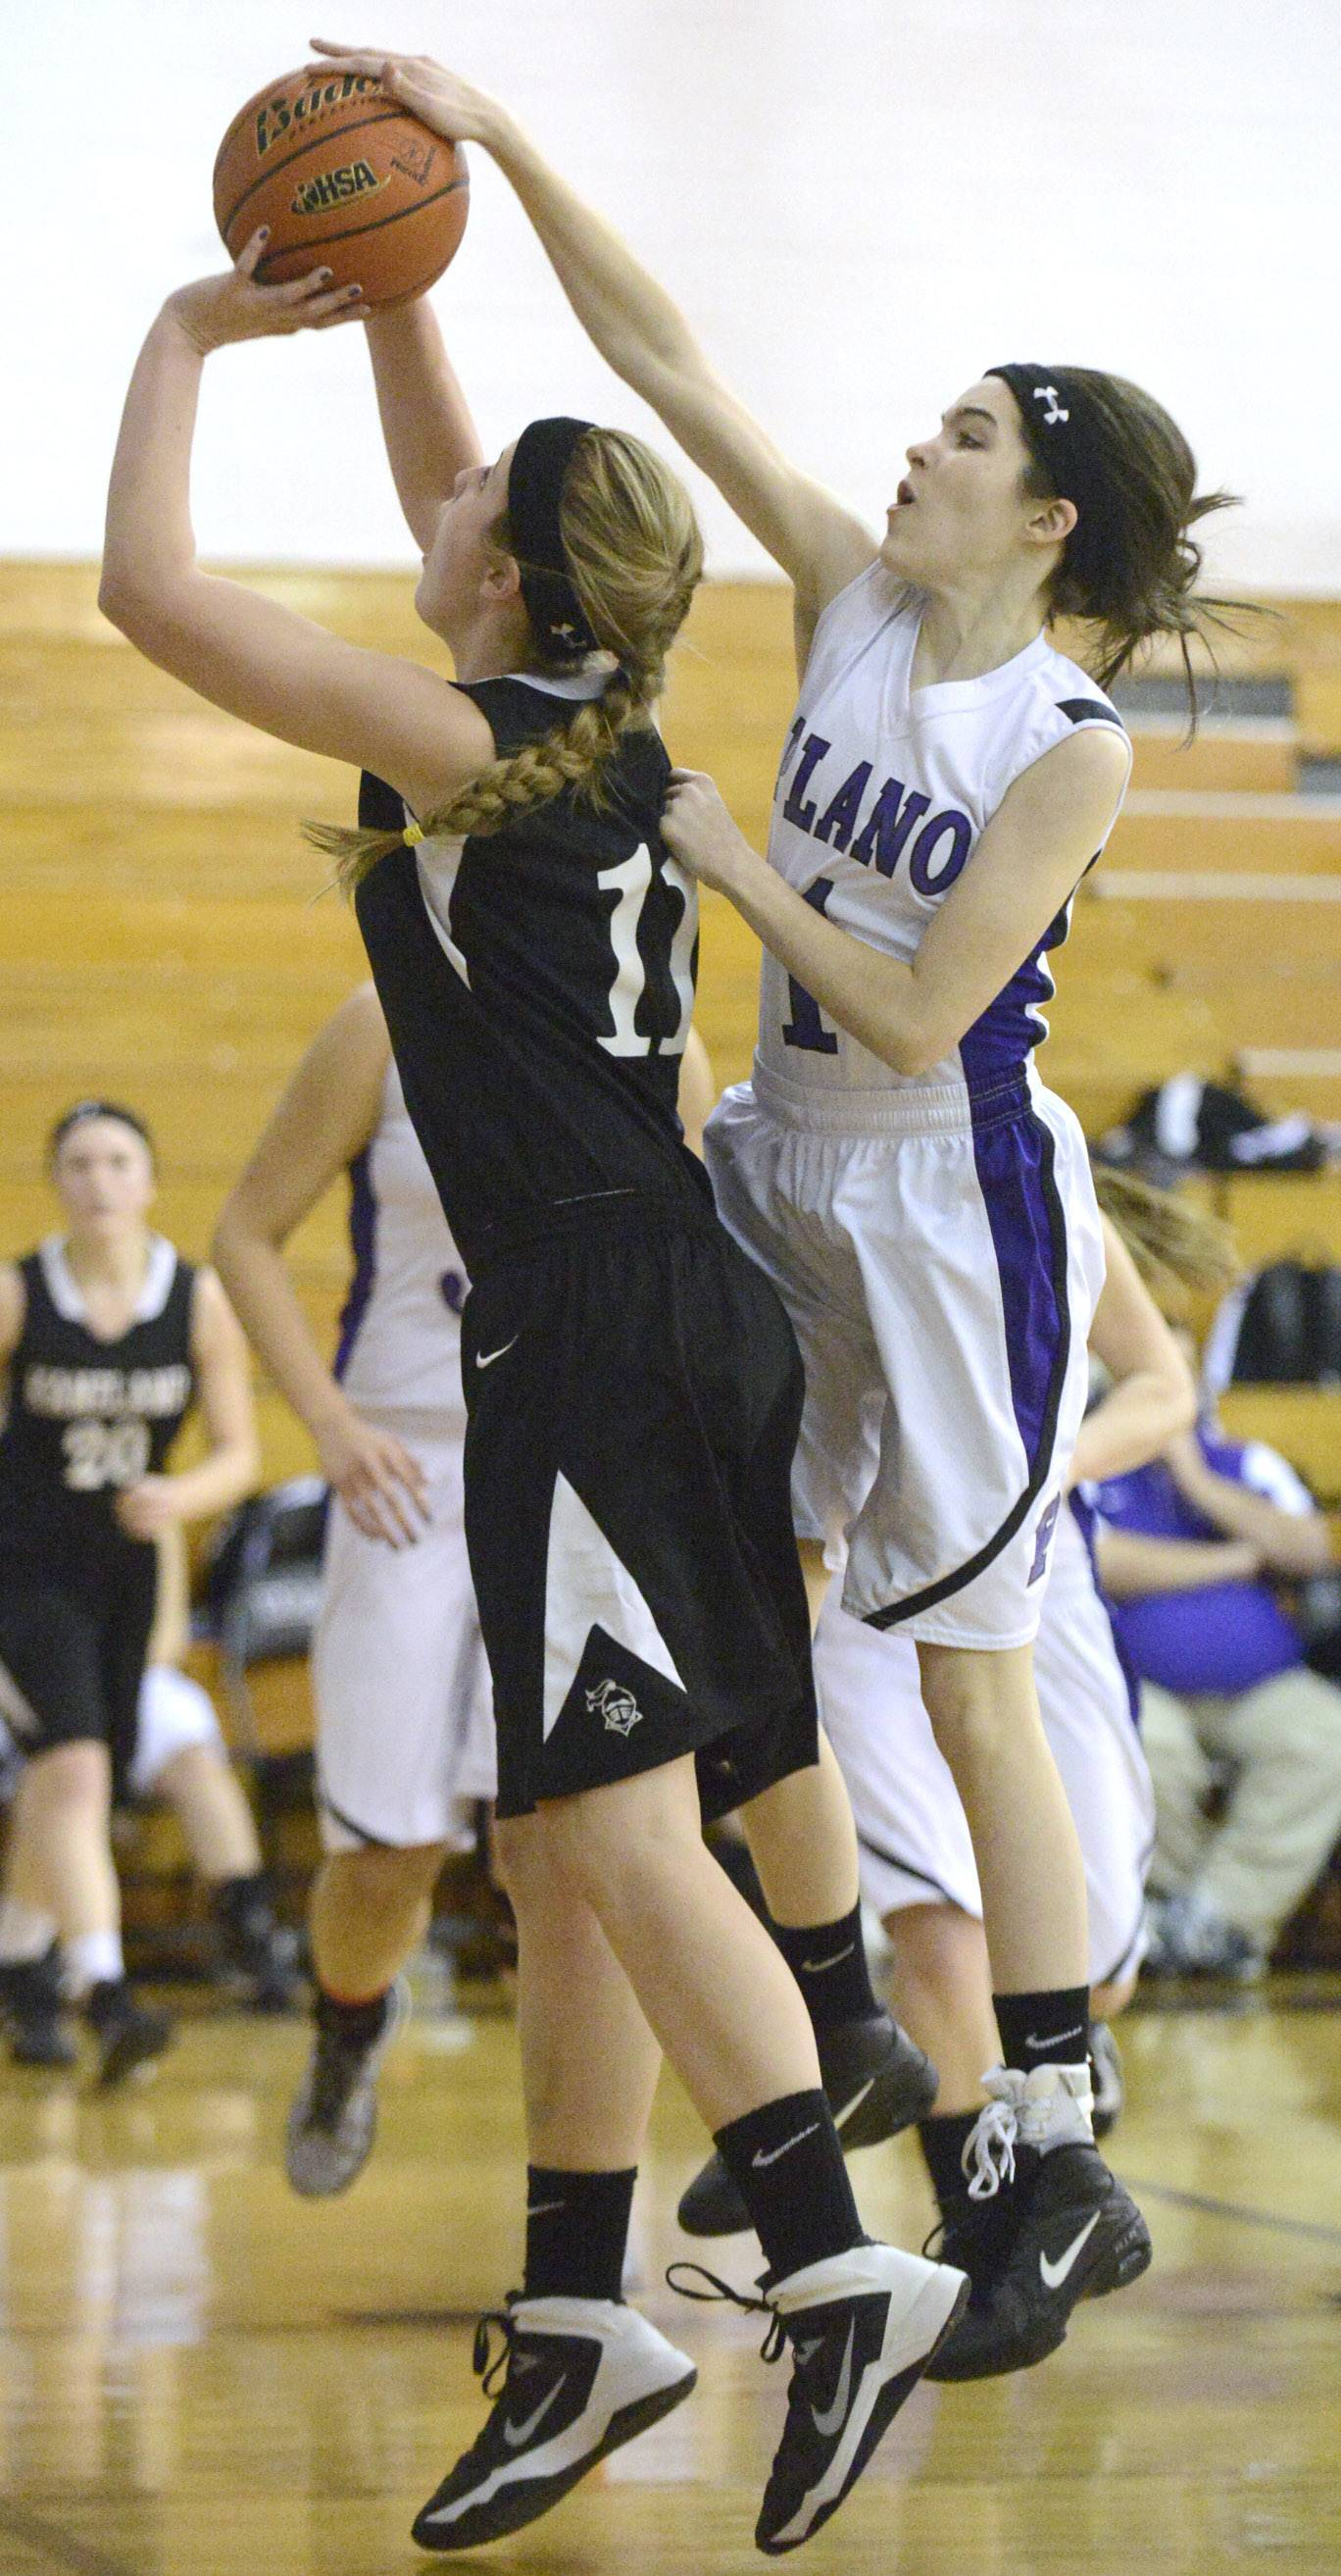 Kaneland's Ally VanBogaert is denied a shot by Plano's Jackie Schane in the second quarter.